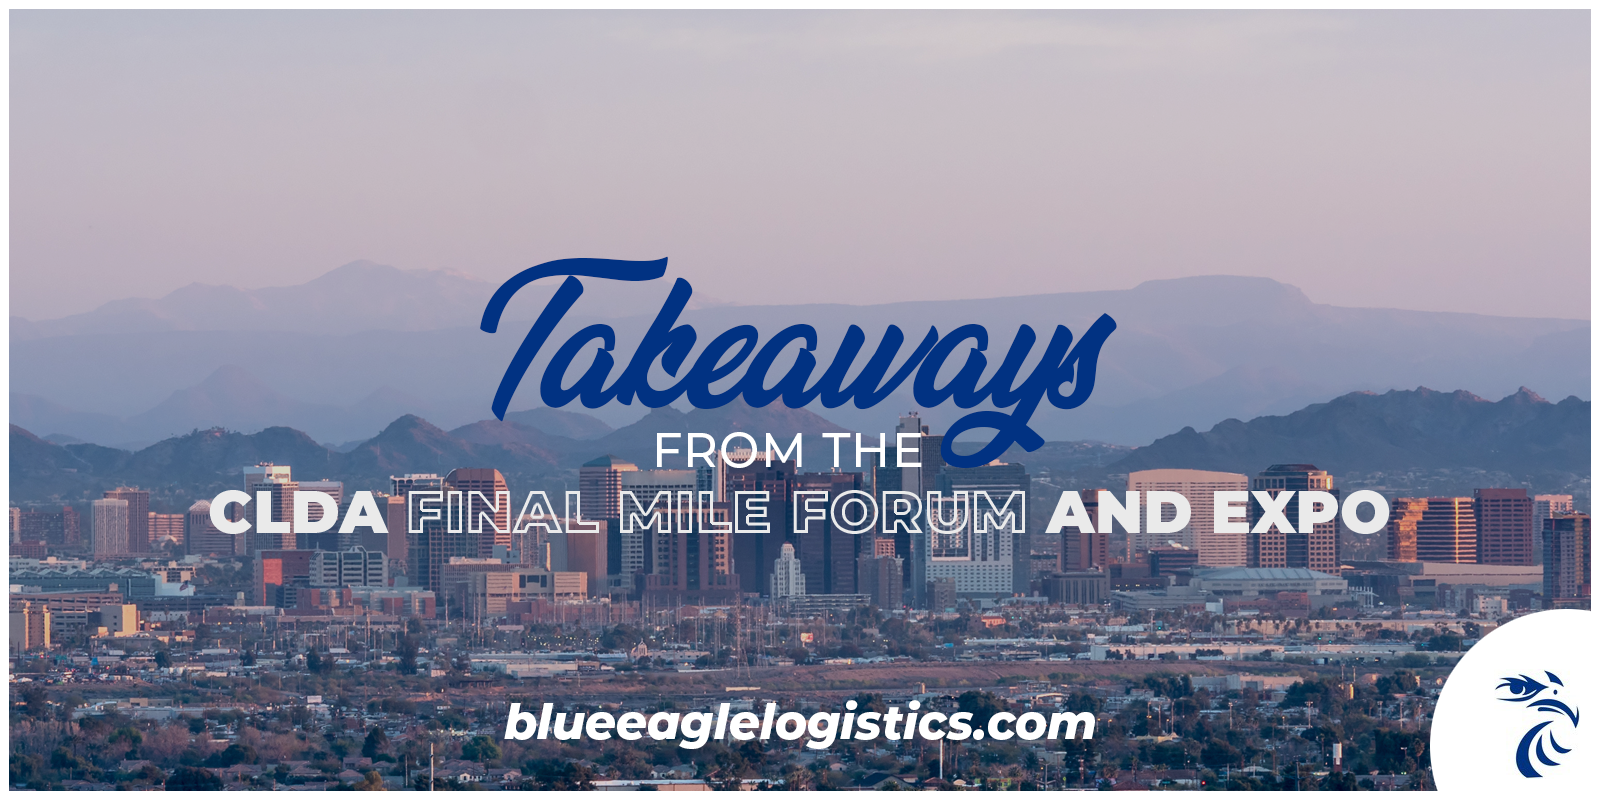 """City Skyline Shot with Text: """"Takeaways from the CLDA Final Mile Forum and Expo"""""""